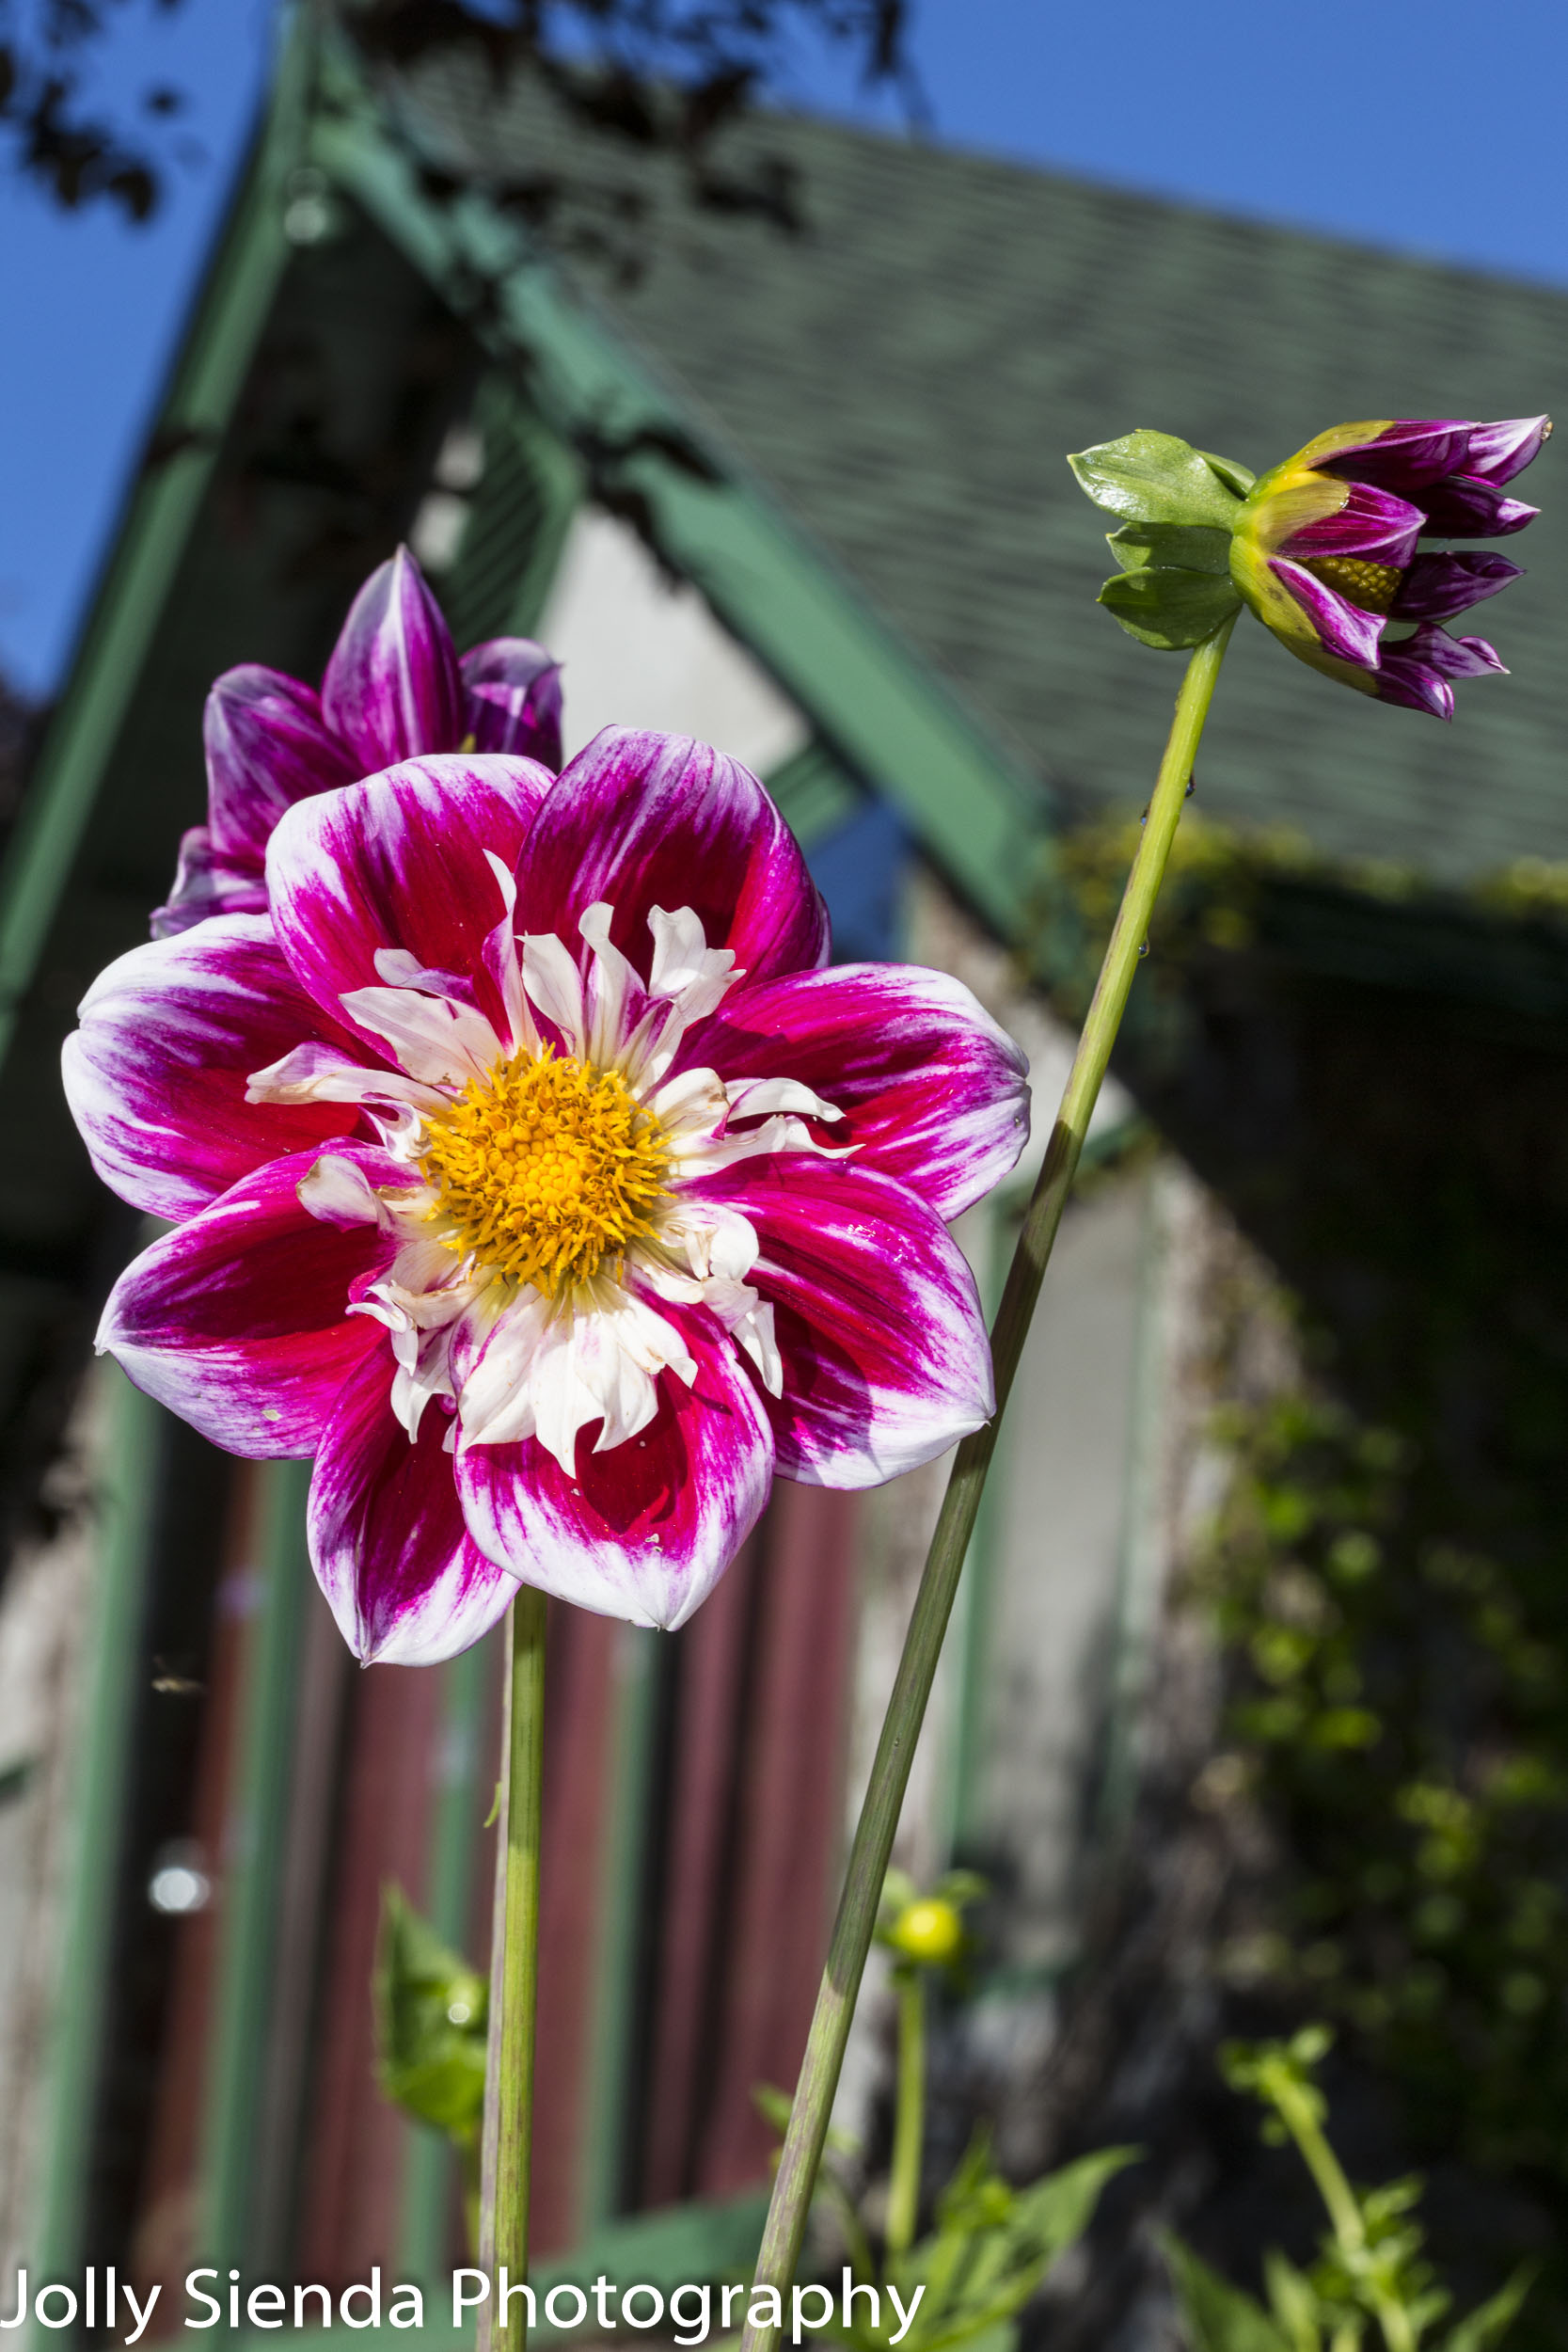 Magenta, white, and yellow dahlia flower and a house